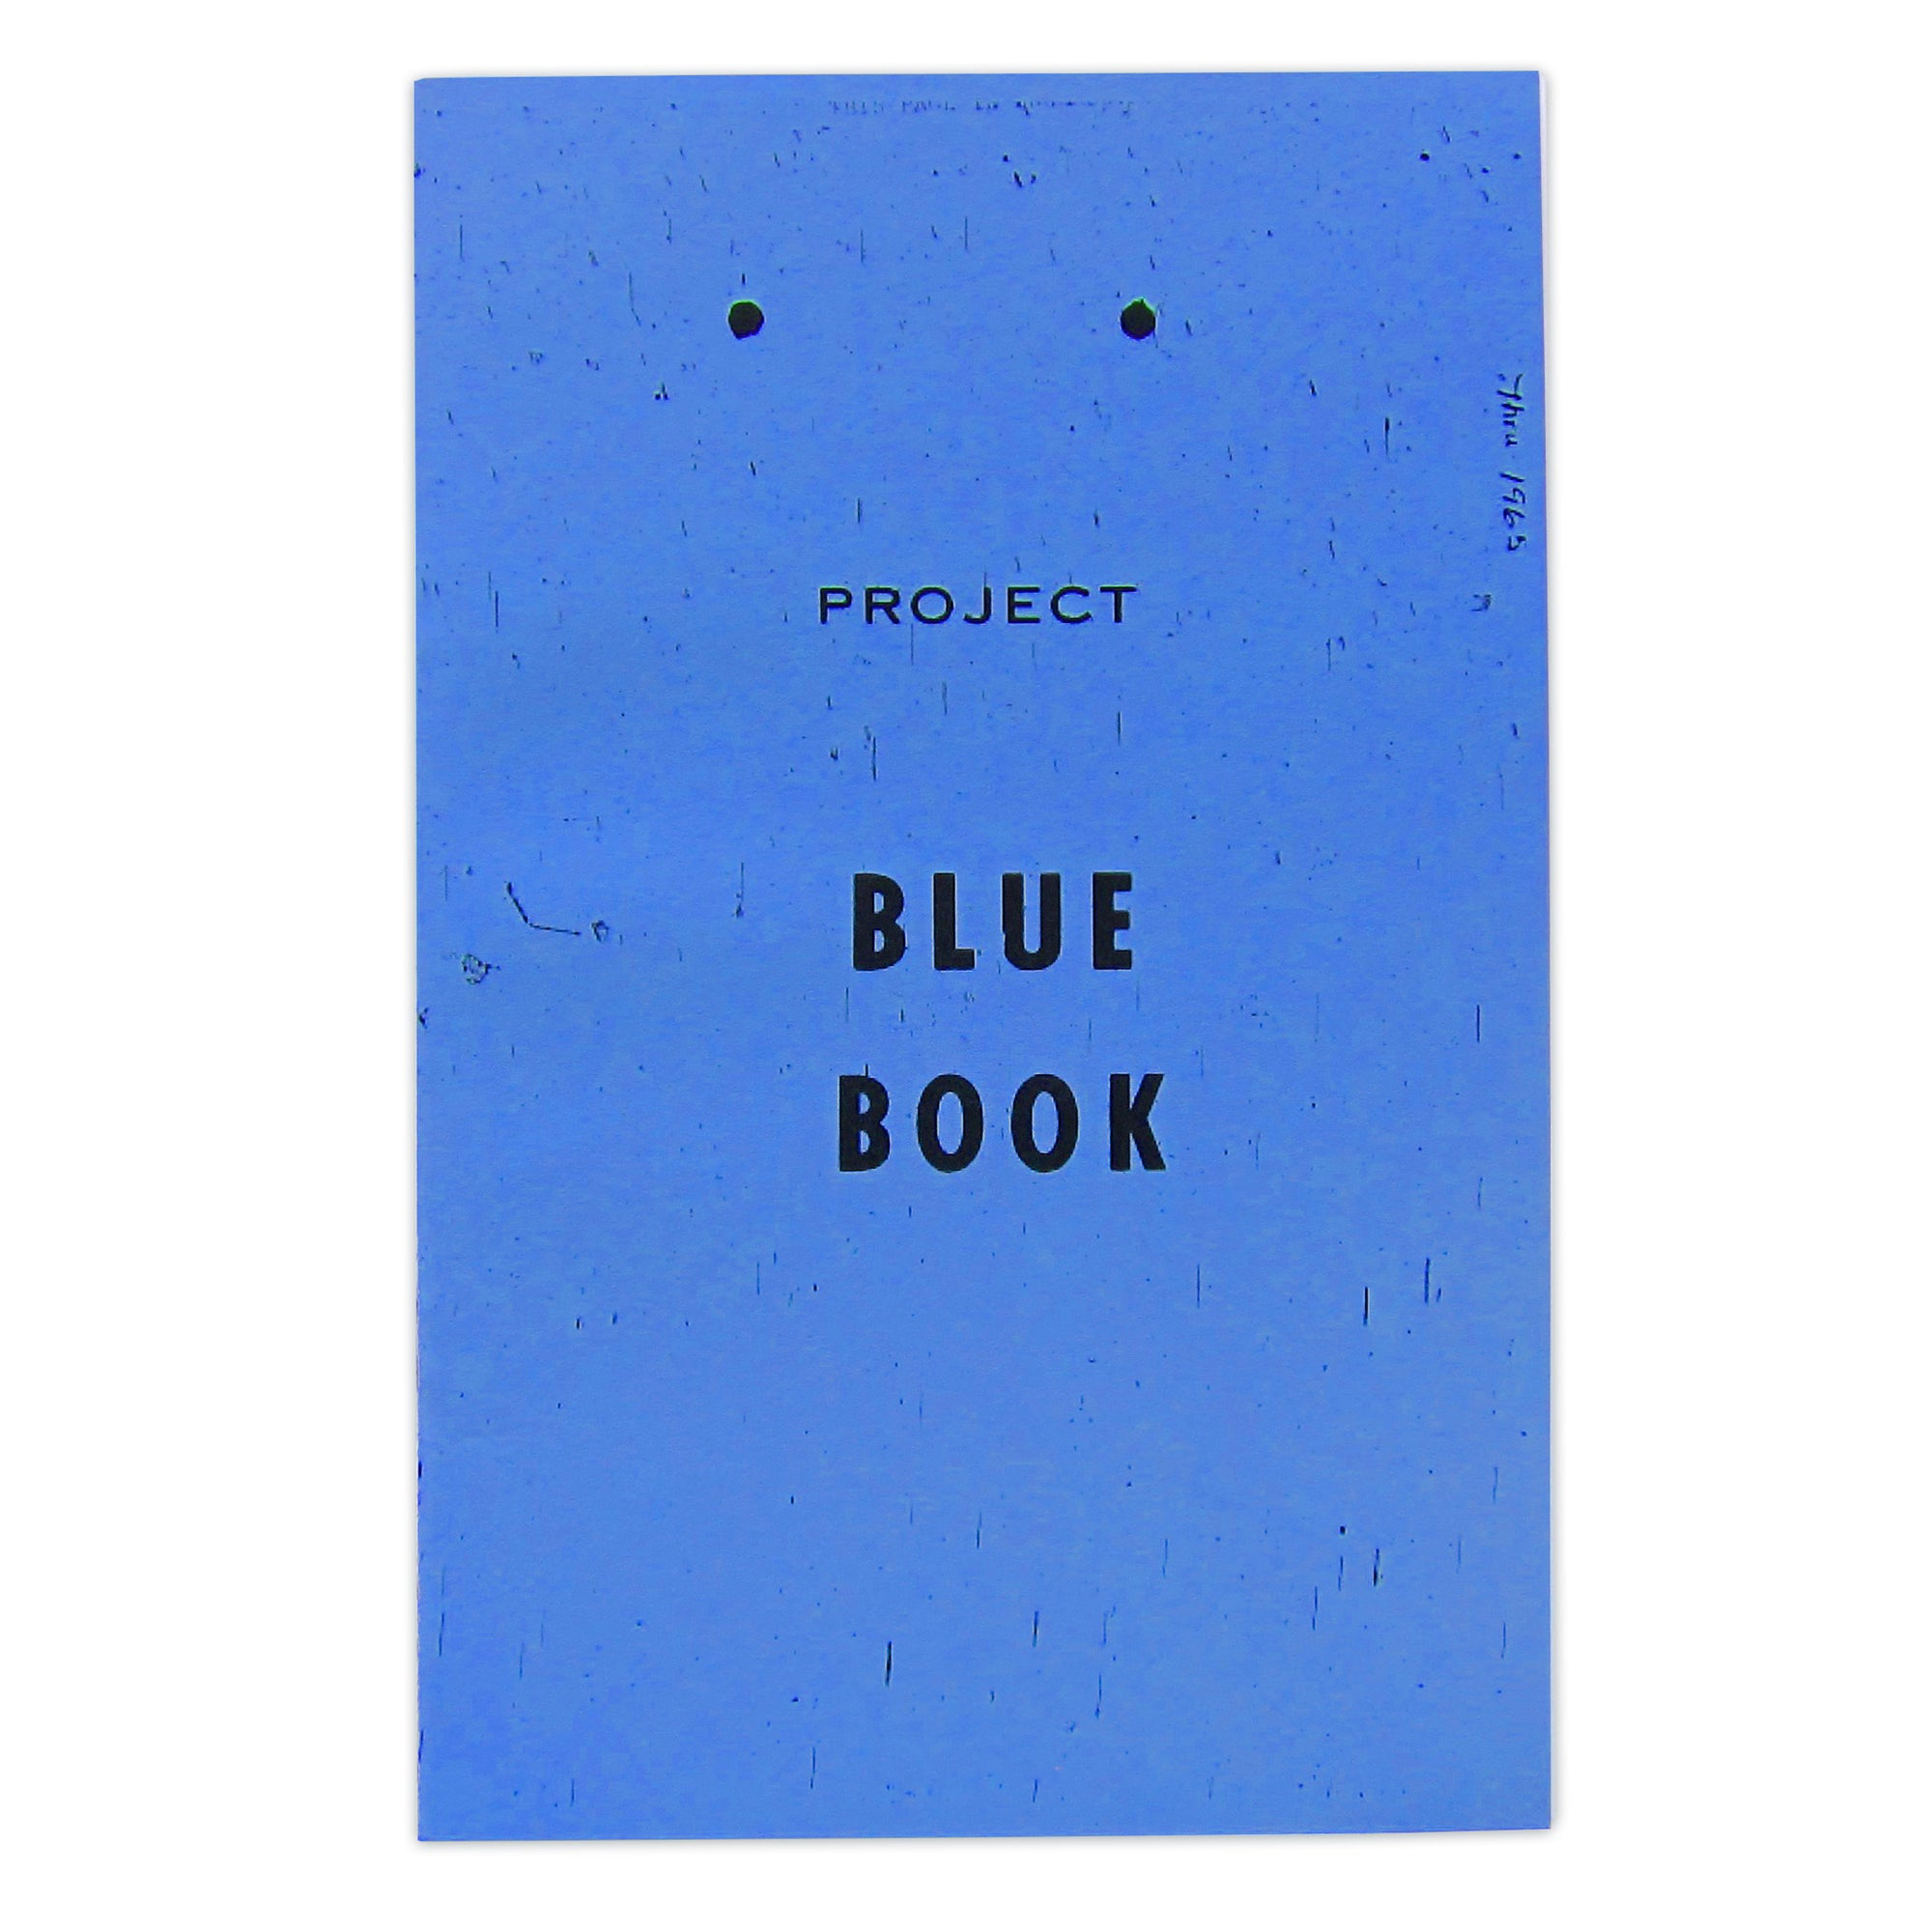 Project Blue Book UFO sighting guide zine by No Fun